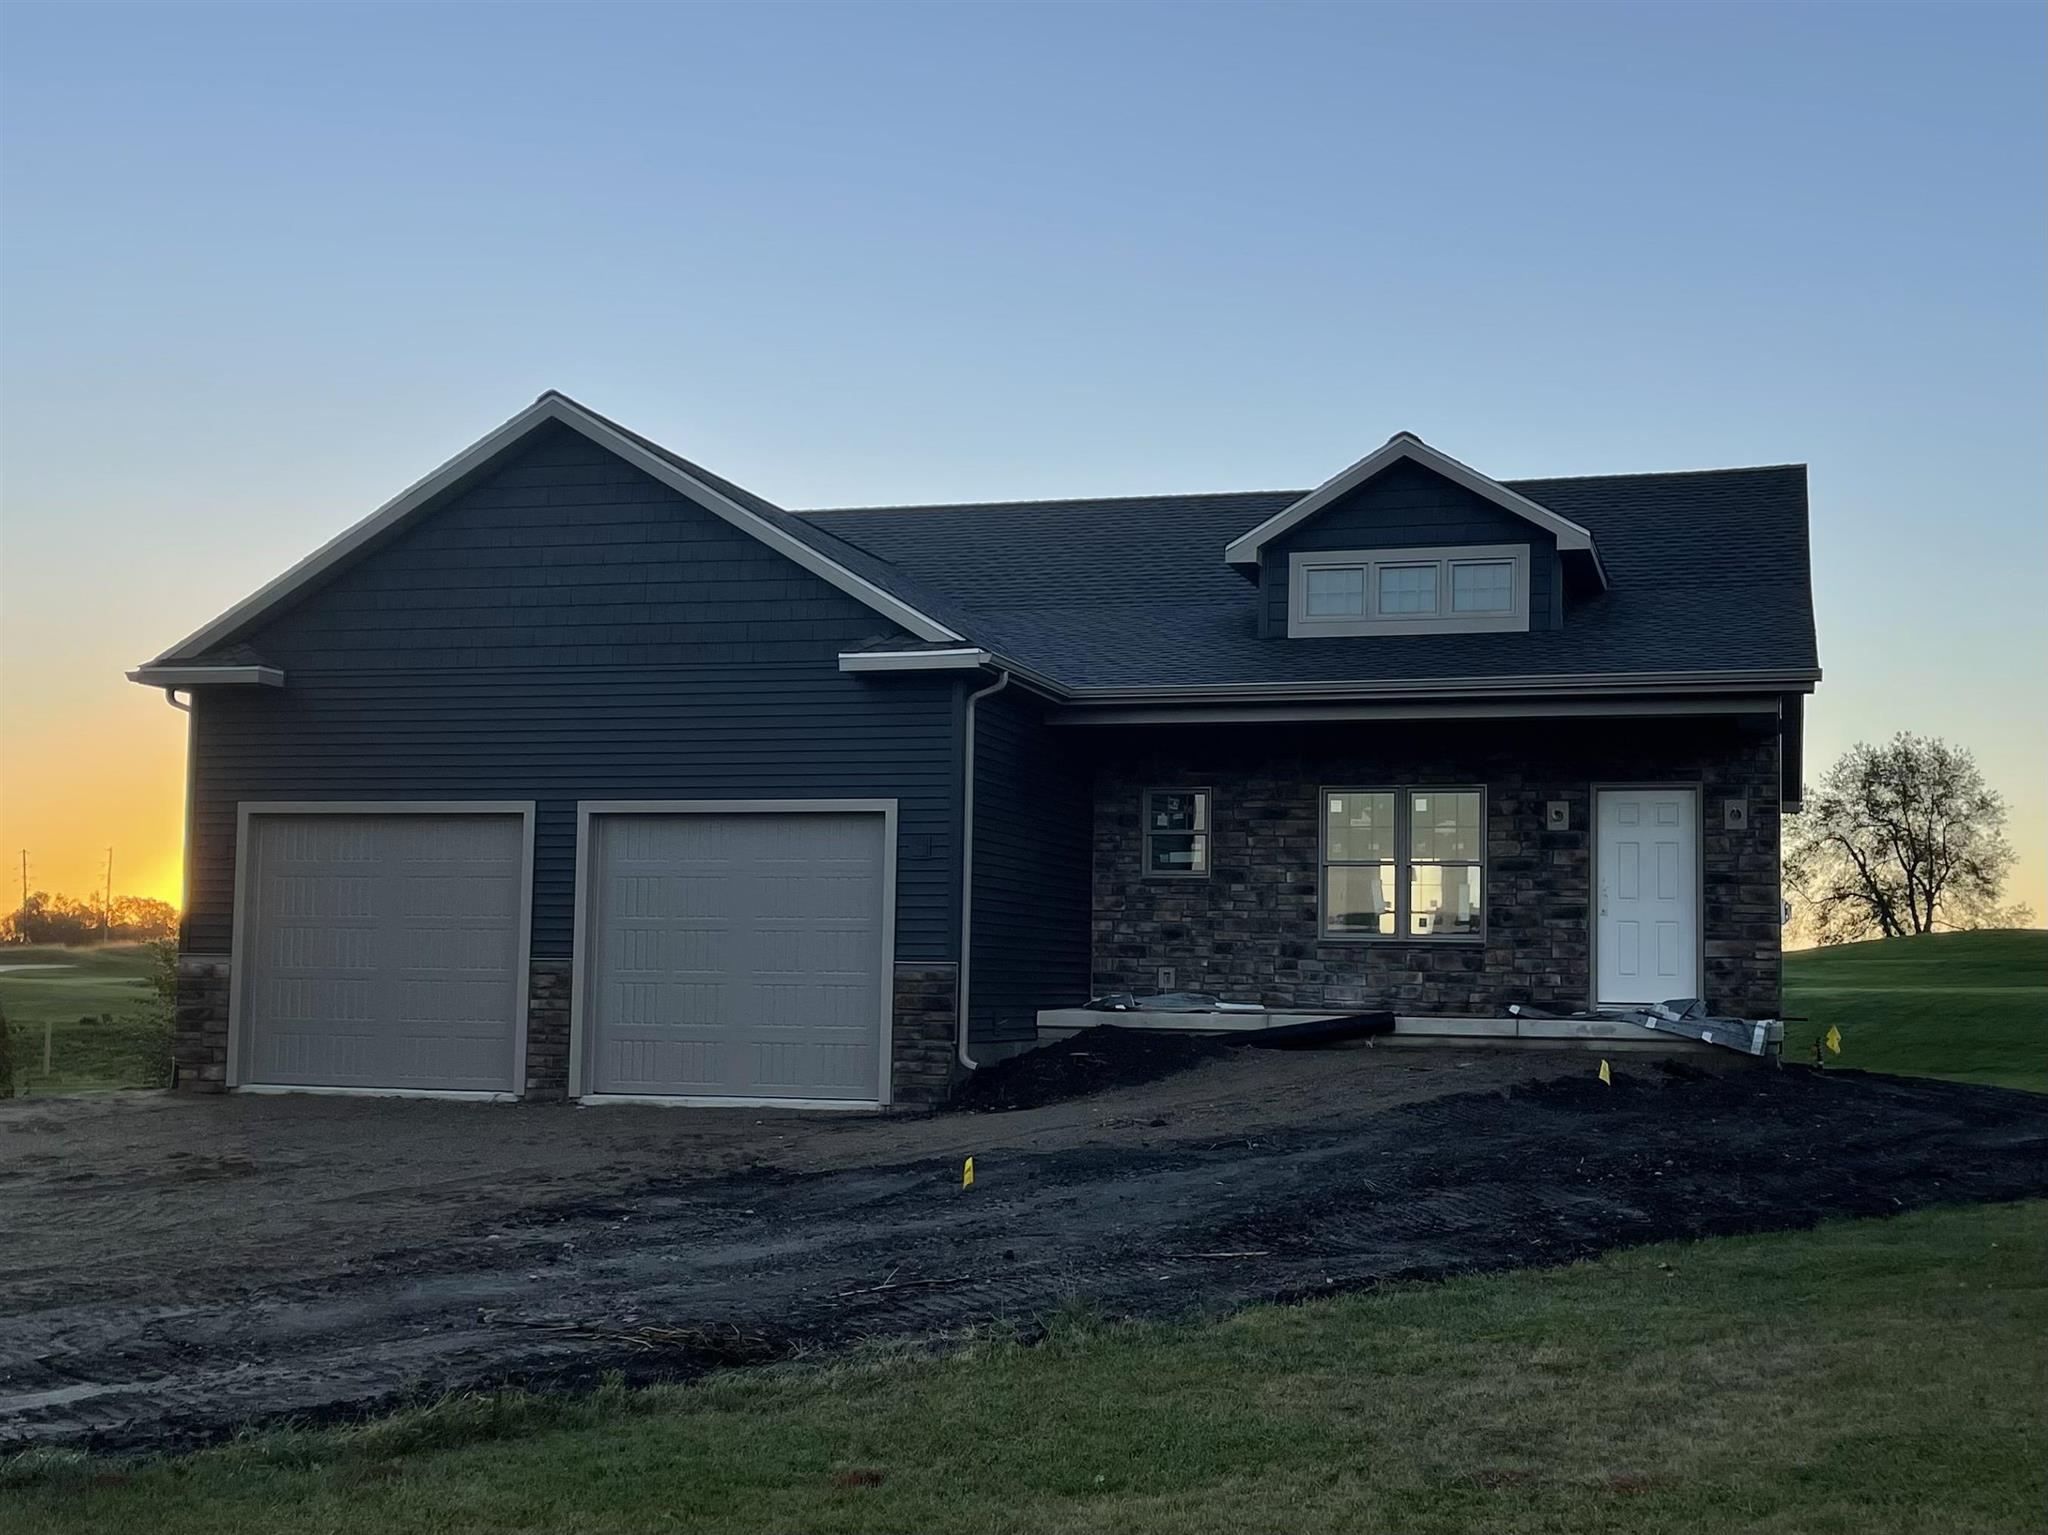 2856 Turnberry Road, Winona Lake, IN 46590